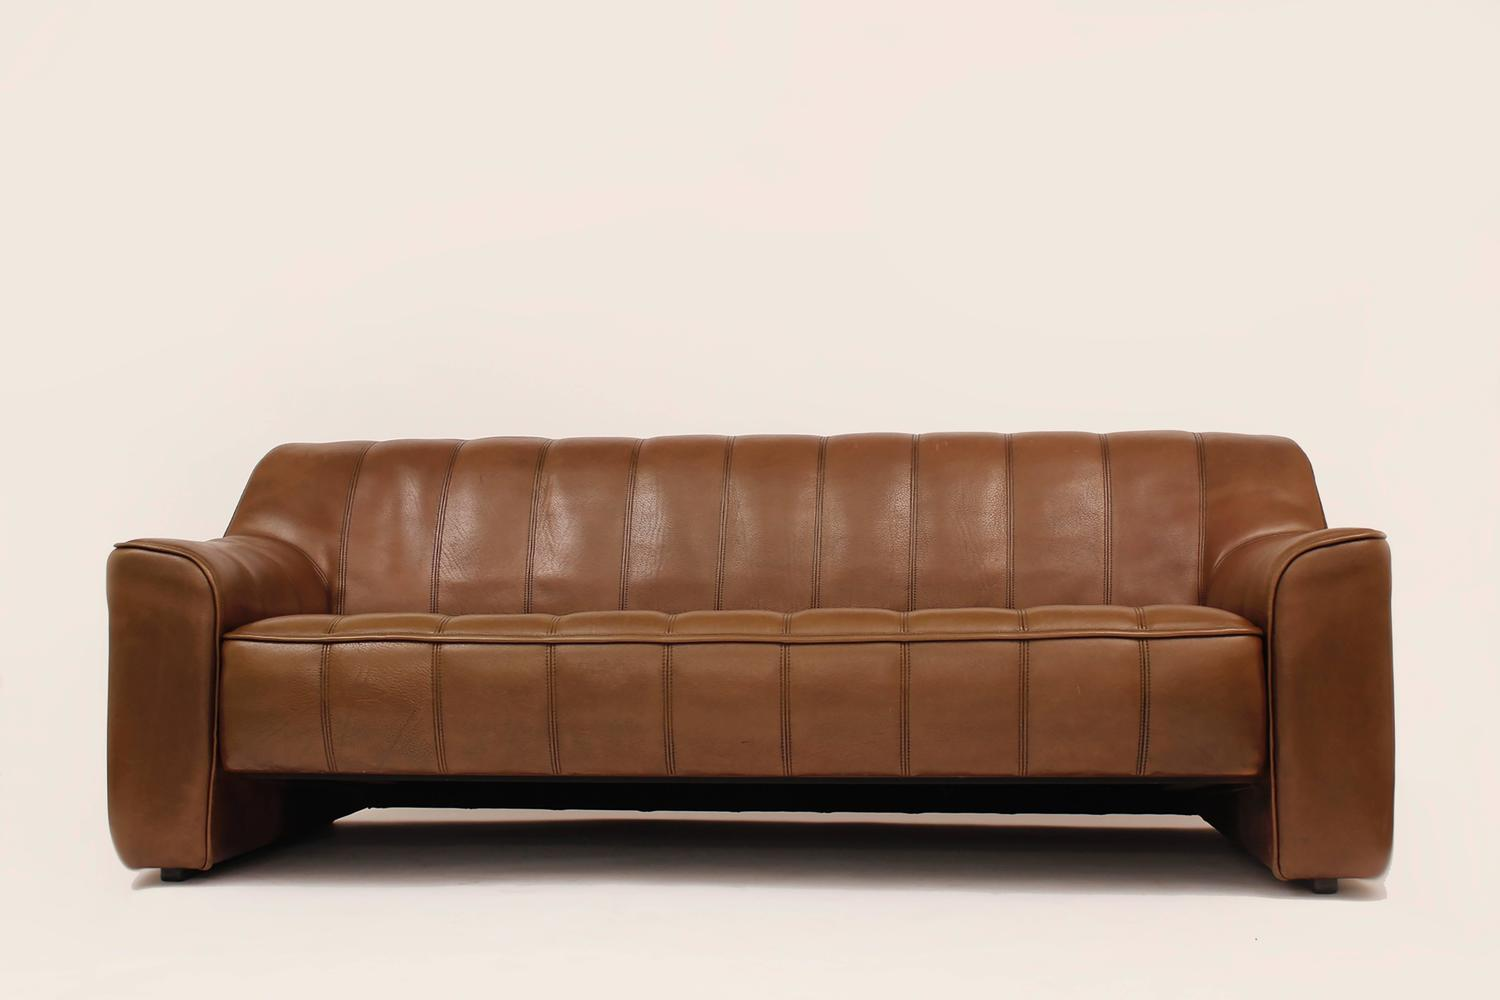 buffalo leather chair mustard yellow bean bag three seater ds 44 sofa by de sede